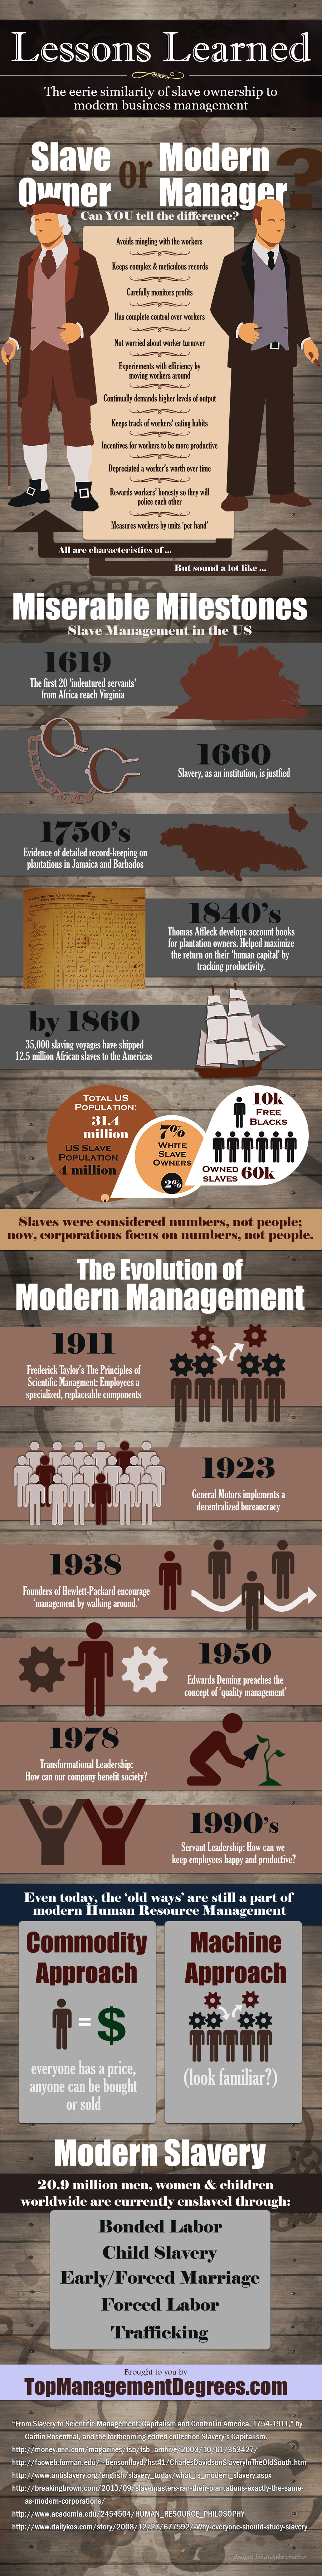 Slave Owners vs. Modern Management: Can You Tell the Difference?